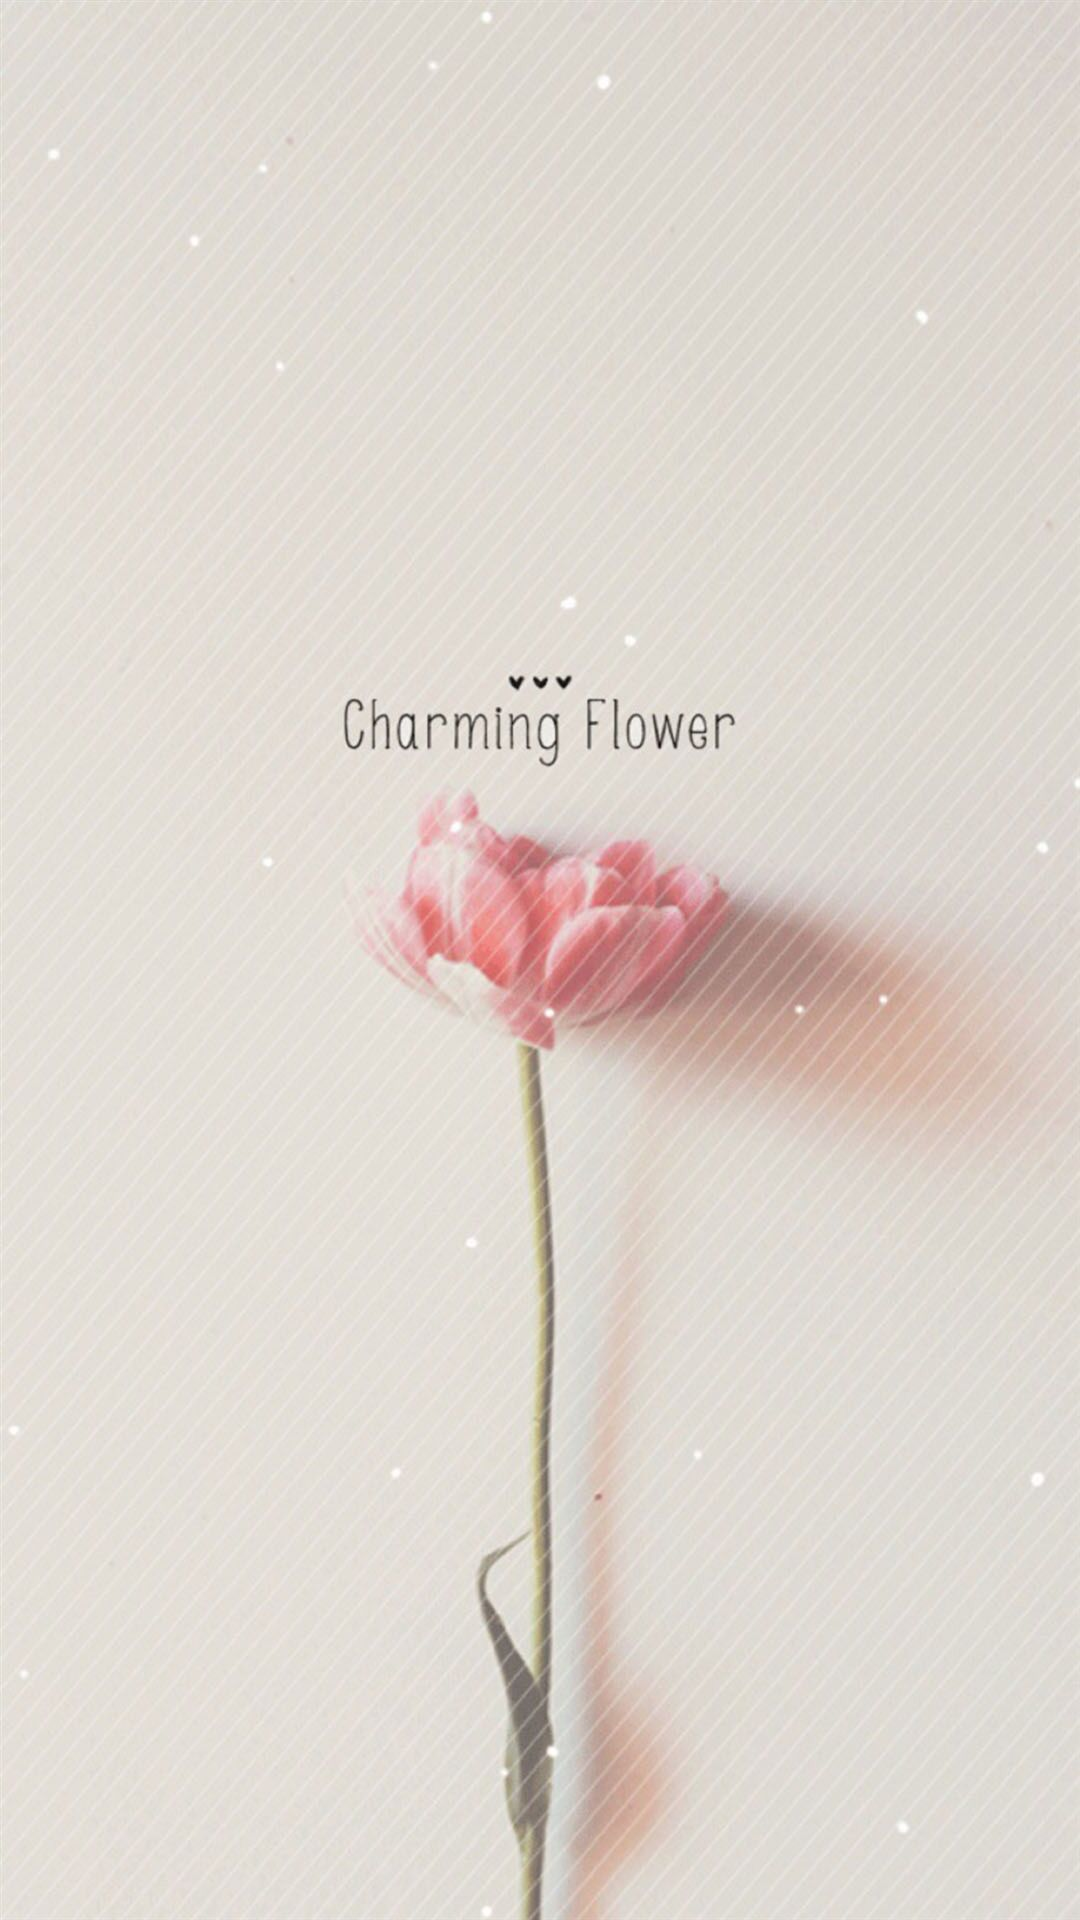 Pure Charming Flower Simple Pattern Iphone 6 Plus